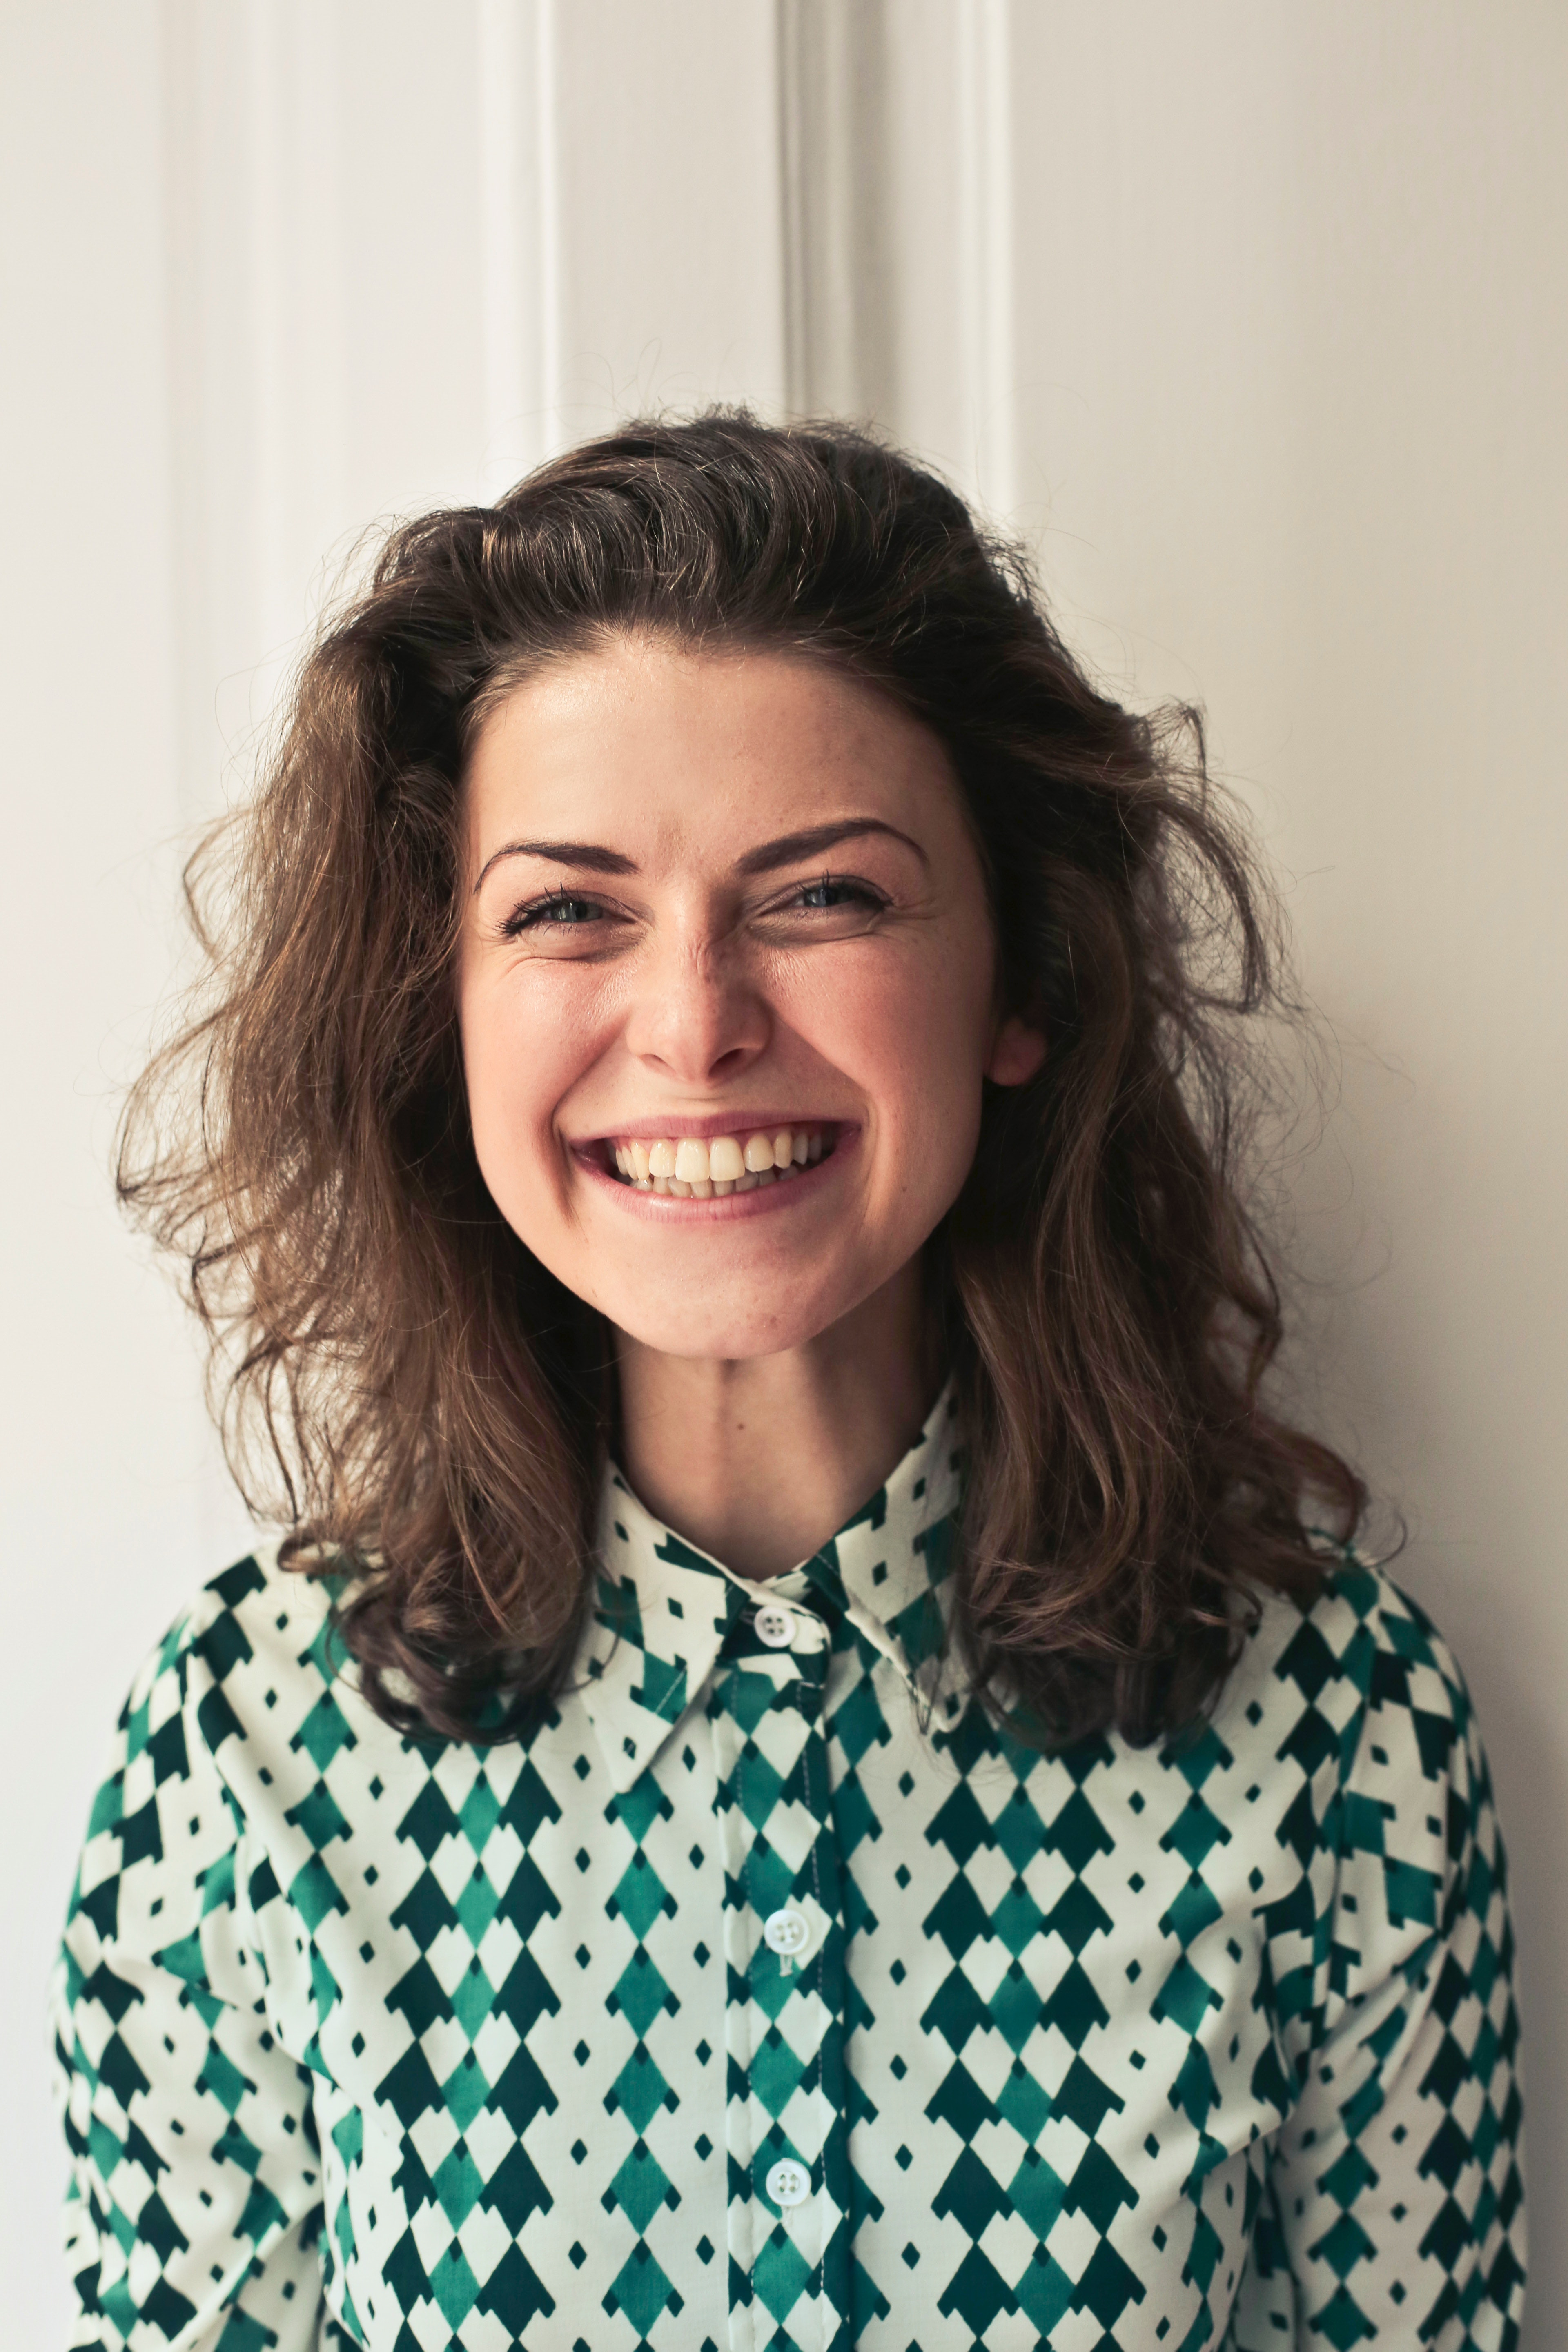 Woman In Collared Shirt, Portrait, Person, Laugh, Pretty, HQ Photo